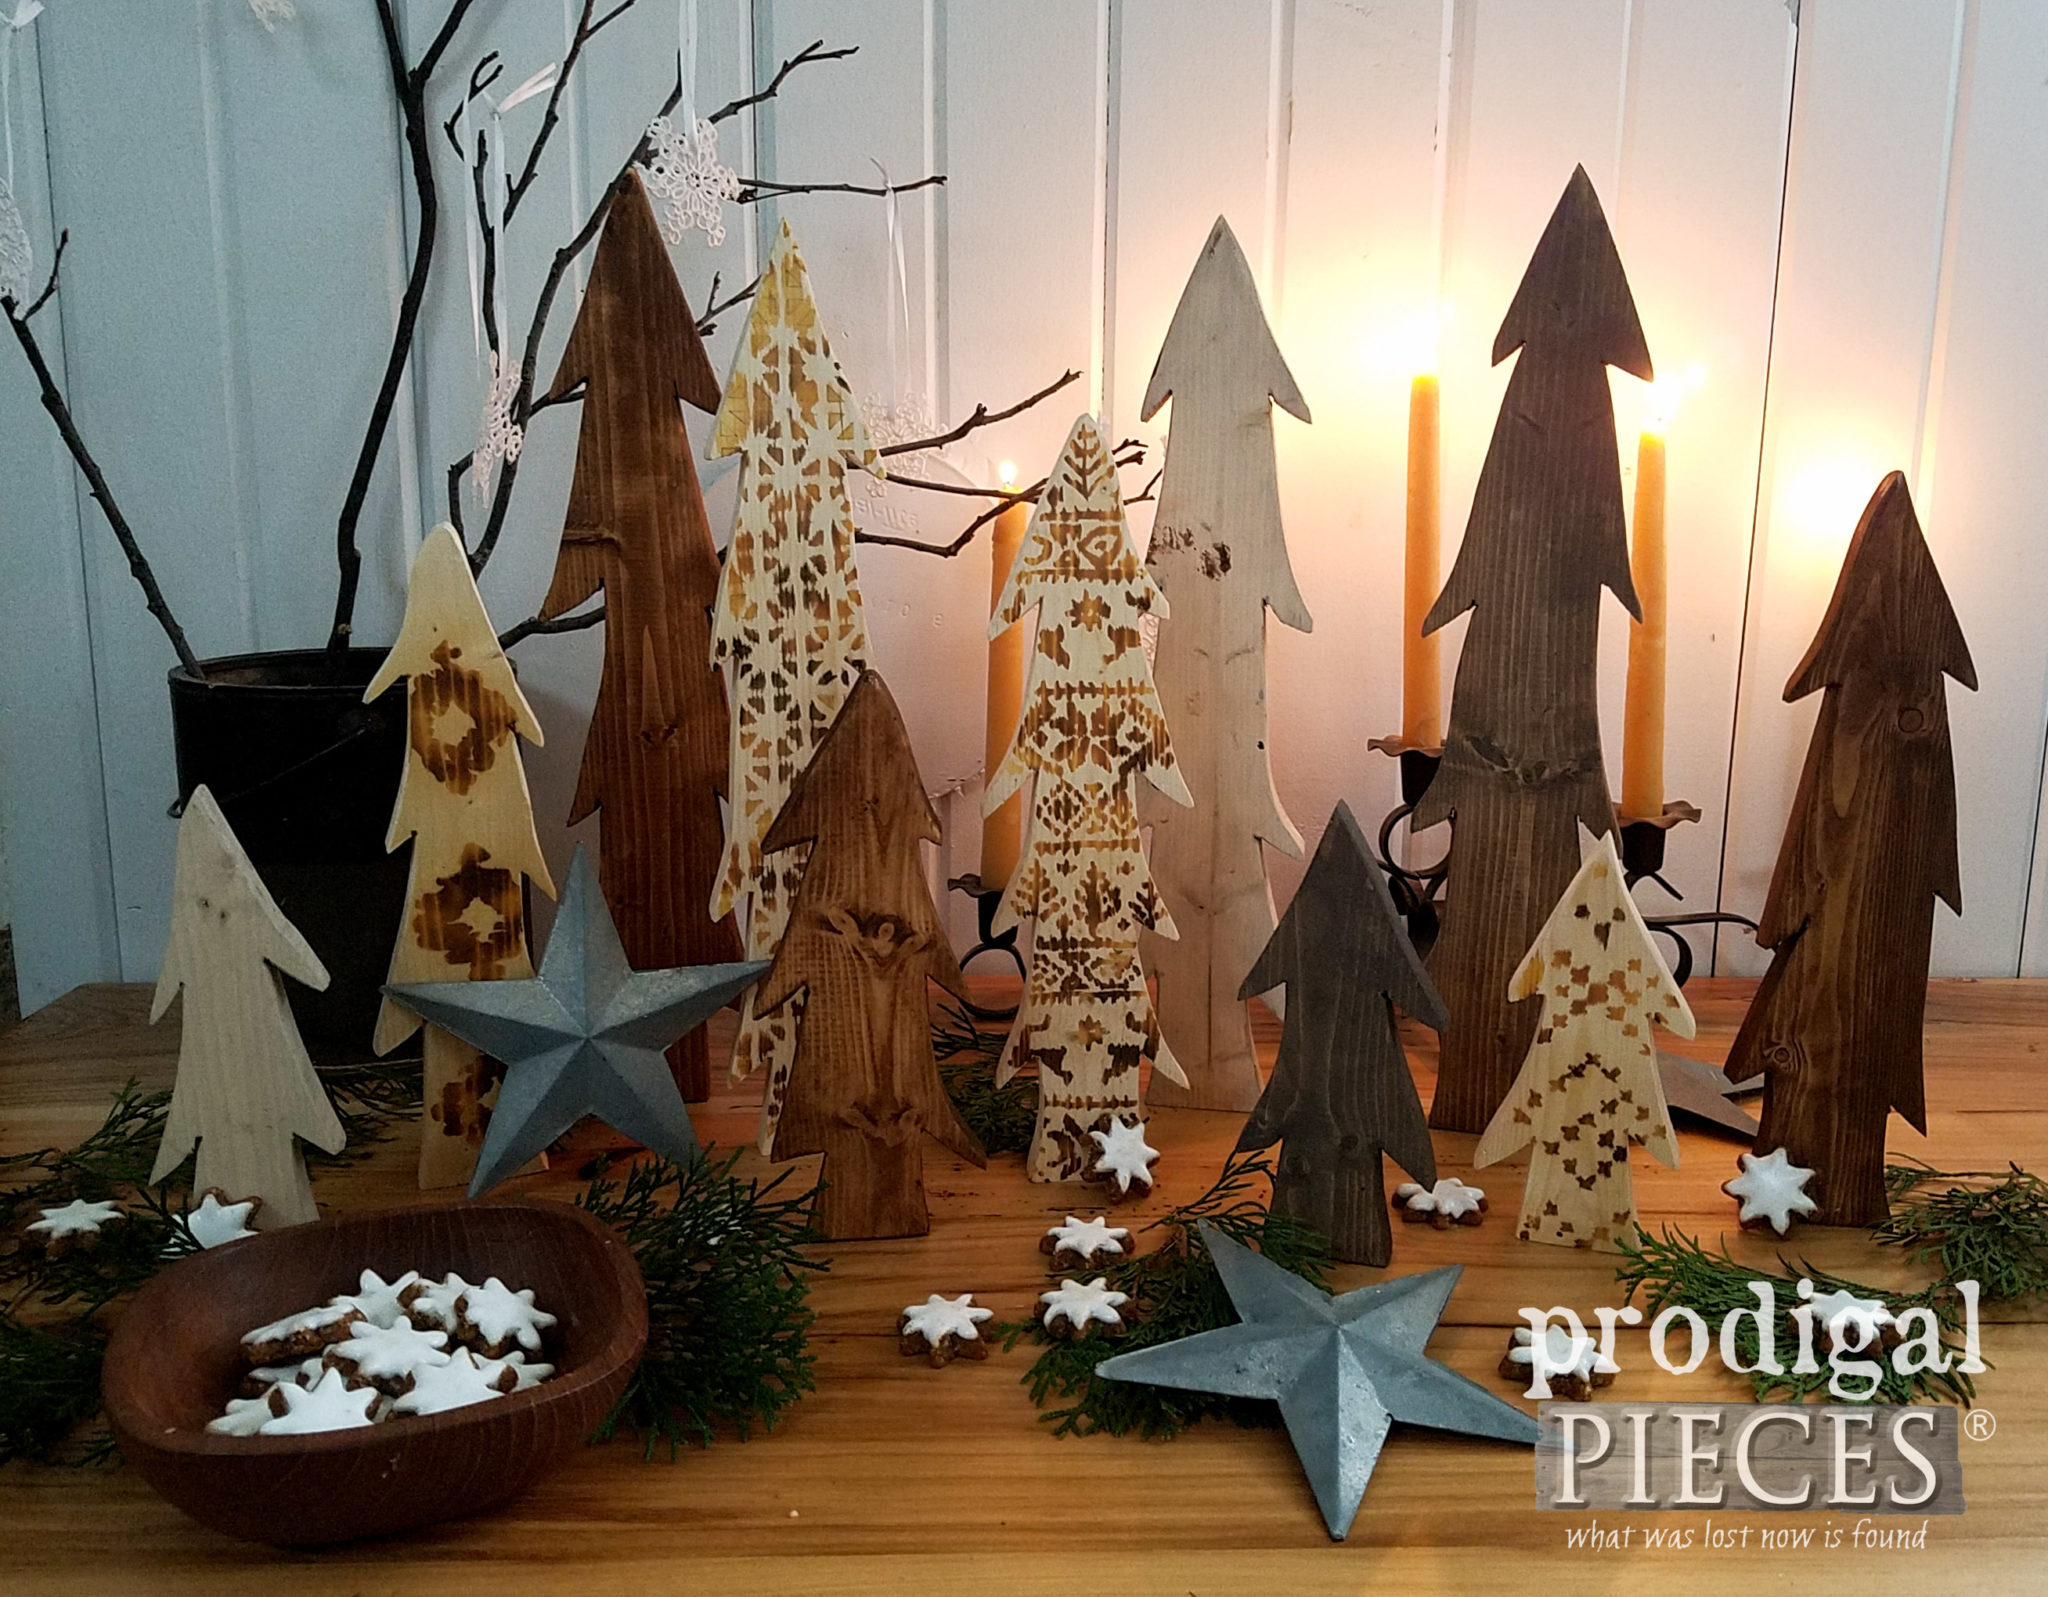 Candle Lit DIY Wooden Trees with Heat Gun Wood Burning Tutorial | Prodigal Pieces | prodigalpieces.com